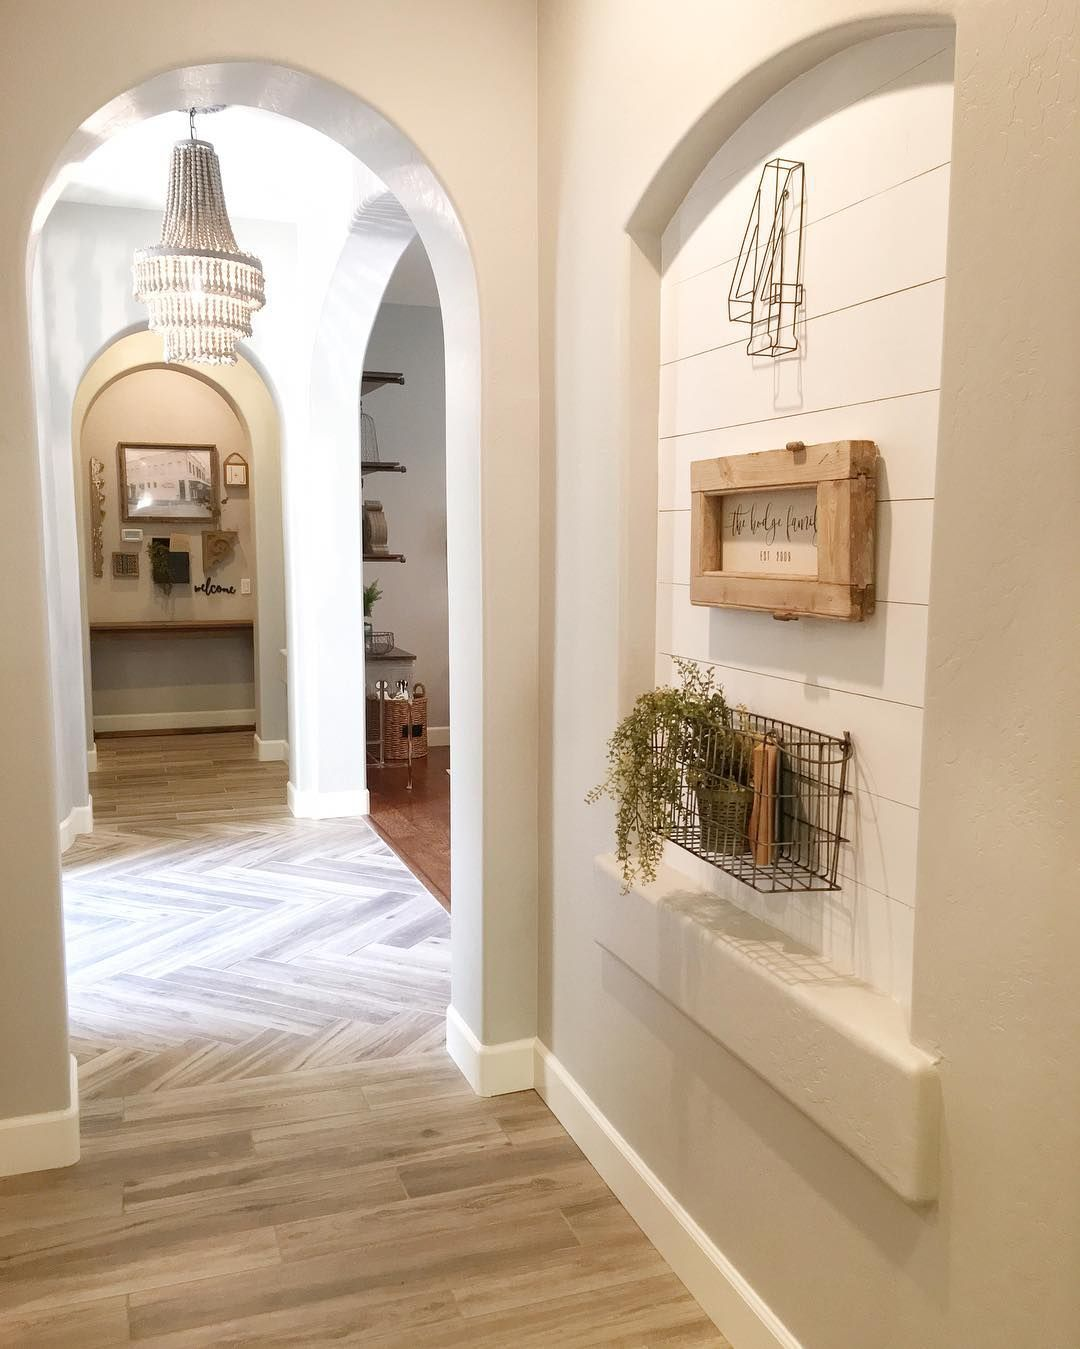 Large Niche Decorating Ideas: Pin By Michelle Hawkins On DIY Wall Decor: Art & Frames In